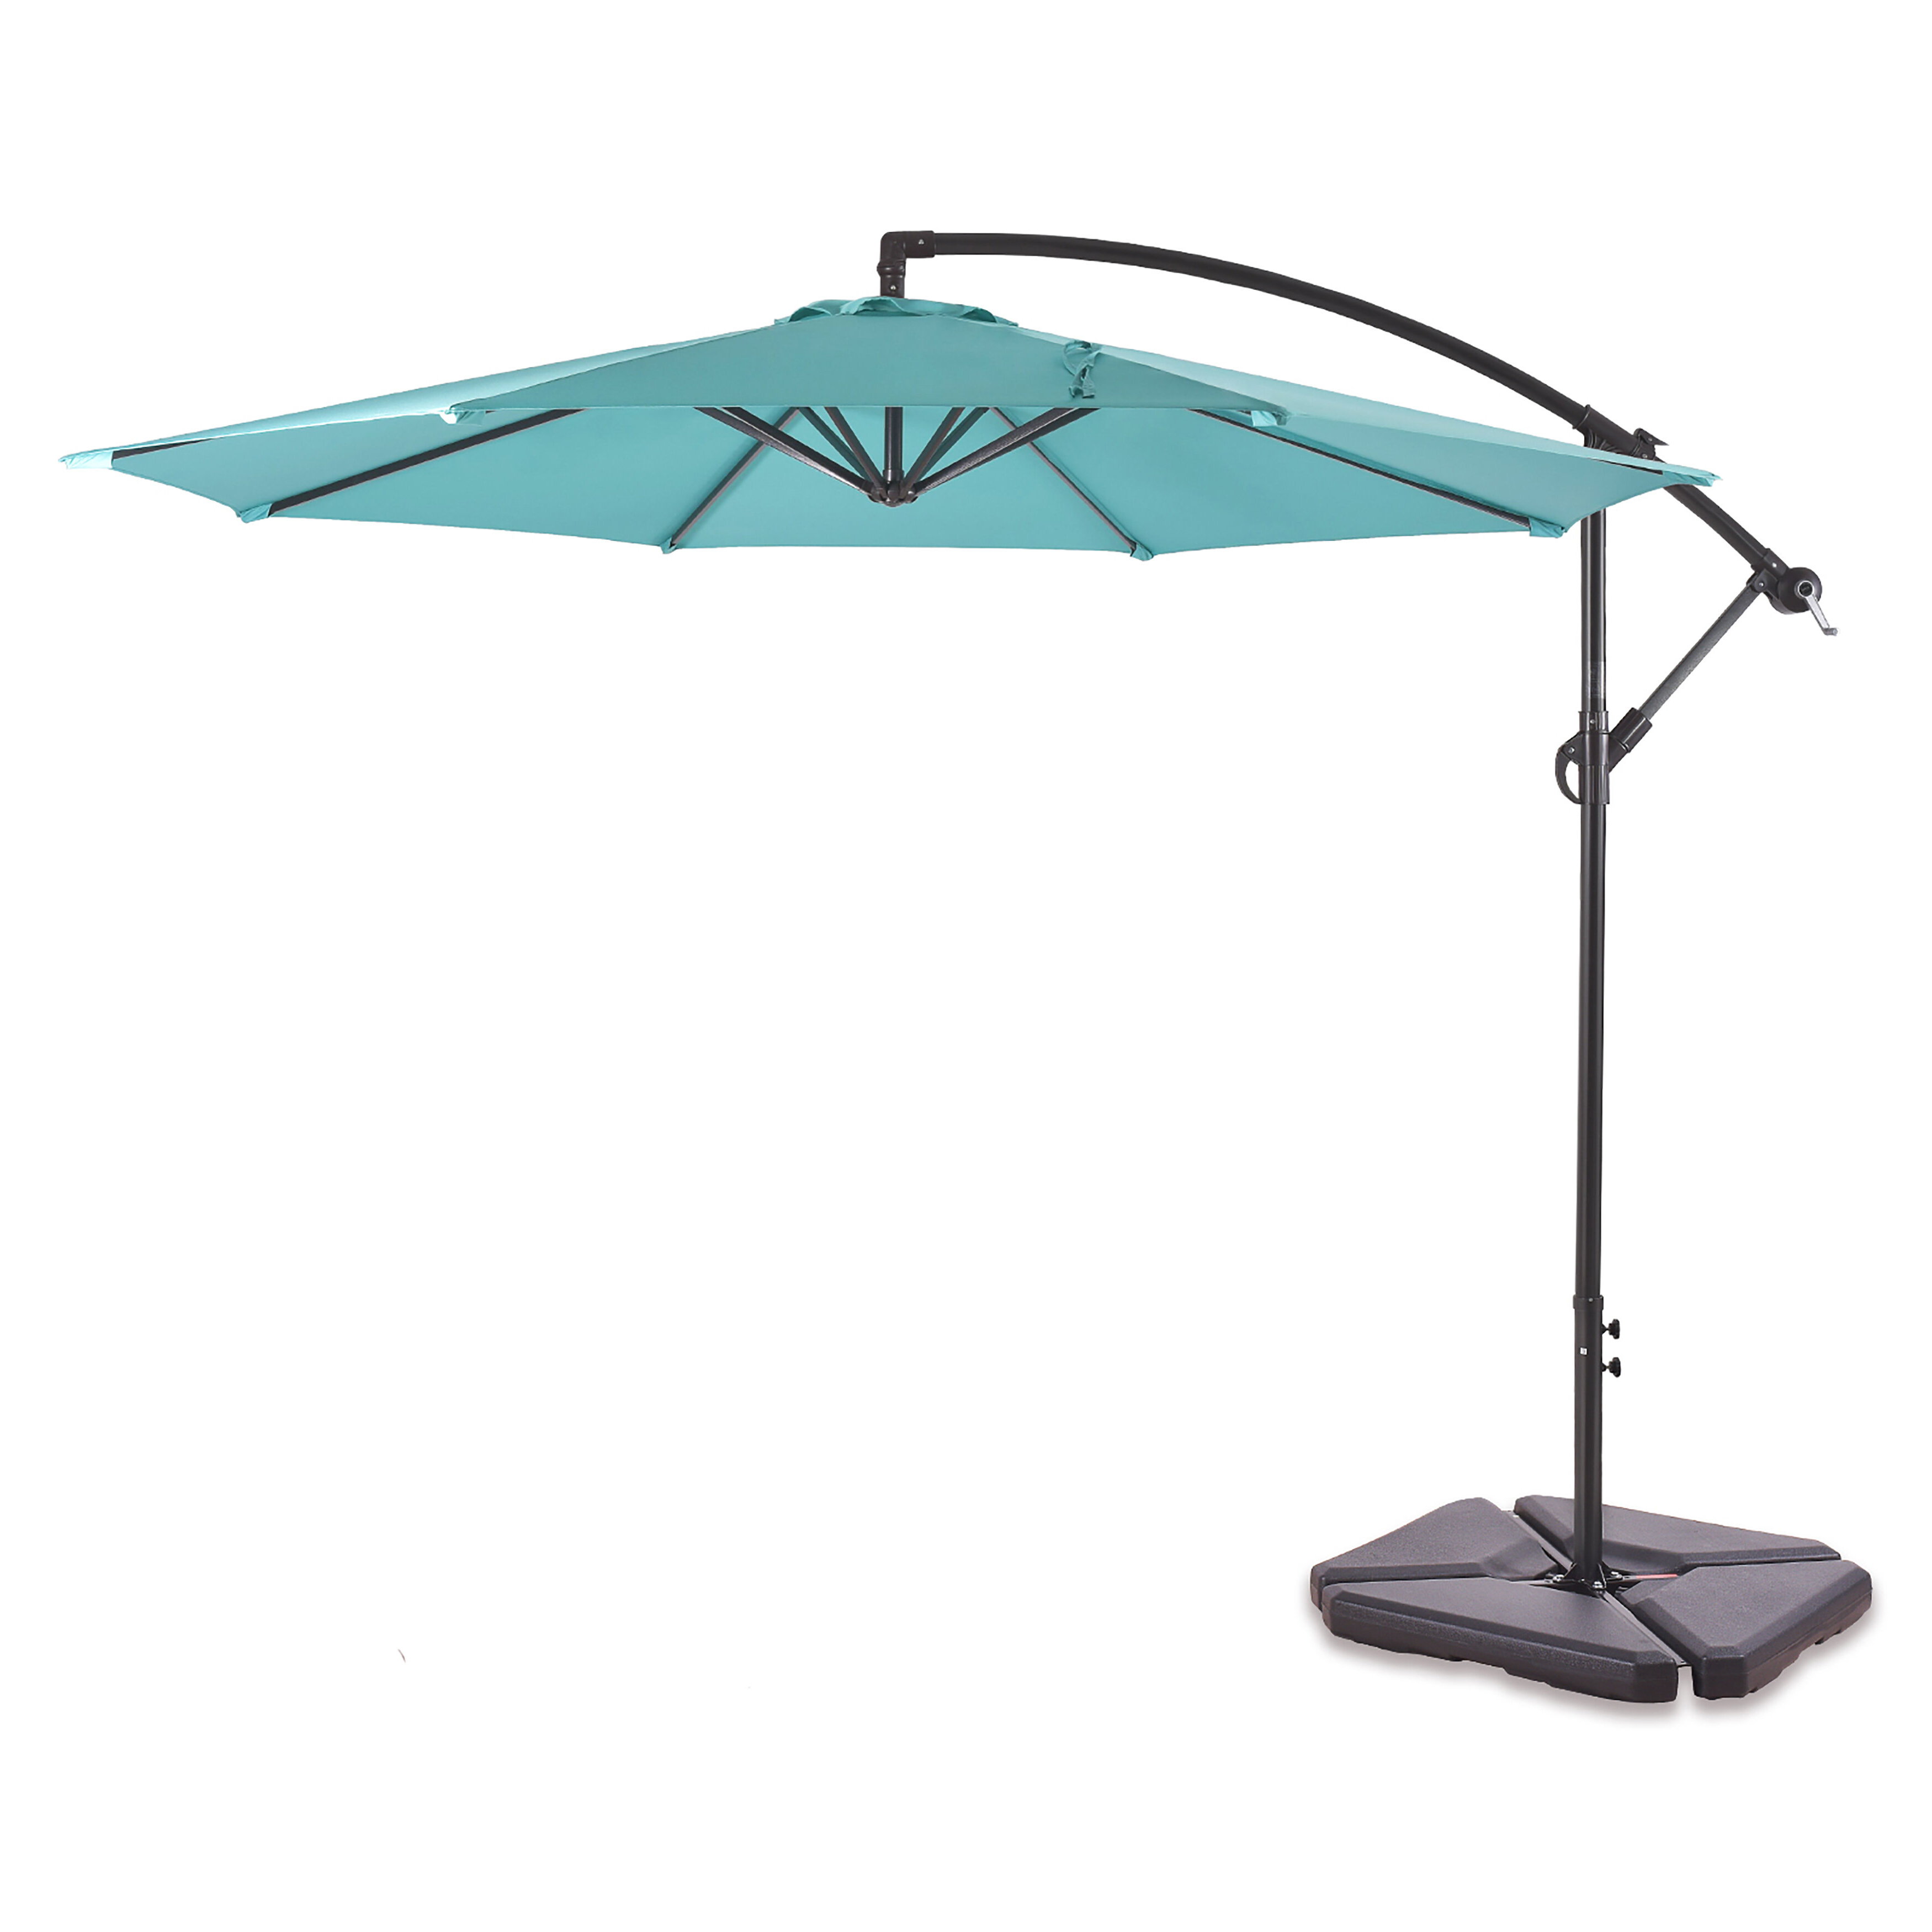 Maglione Fabric 4Cantilever Umbrellas Pertaining To Most Popular Karr 10' Cantilever Umbrella (Gallery 18 of 20)